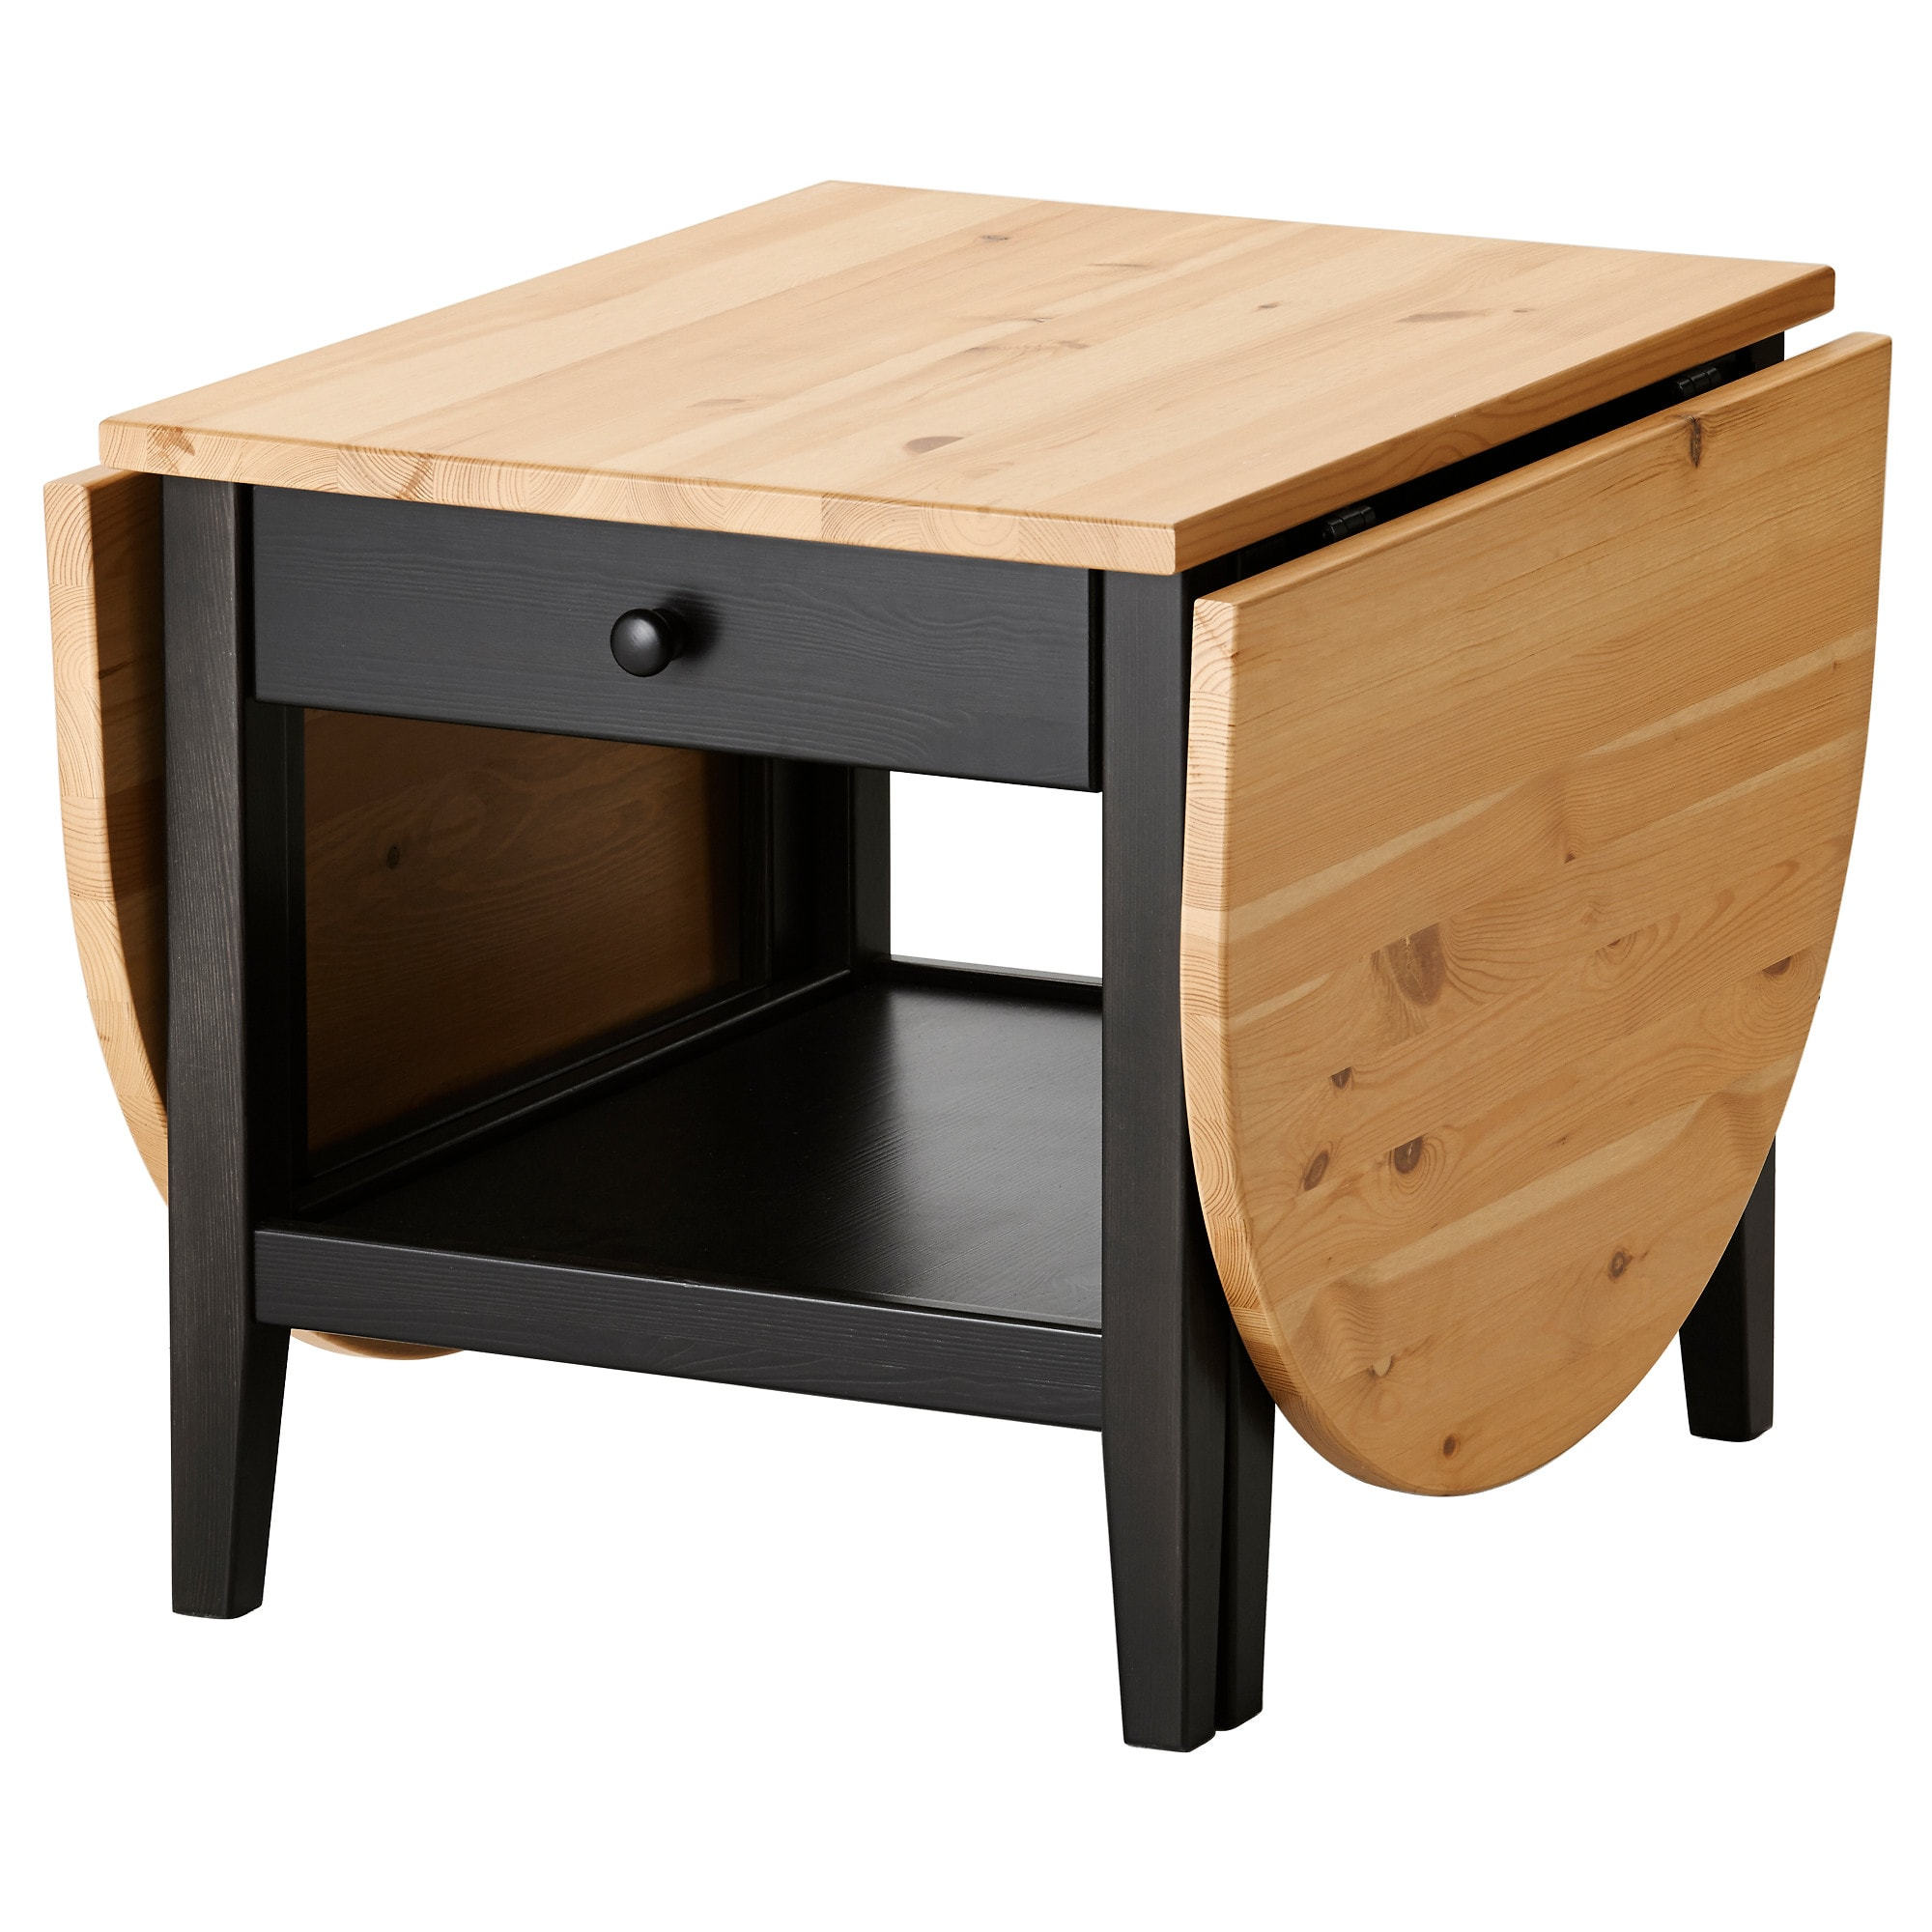 coffee side tables ikea dublin arkelstorp table black corner accent solid wood durable natural material rustic metal attaching legs outdoor lounge furniture clearance west elm